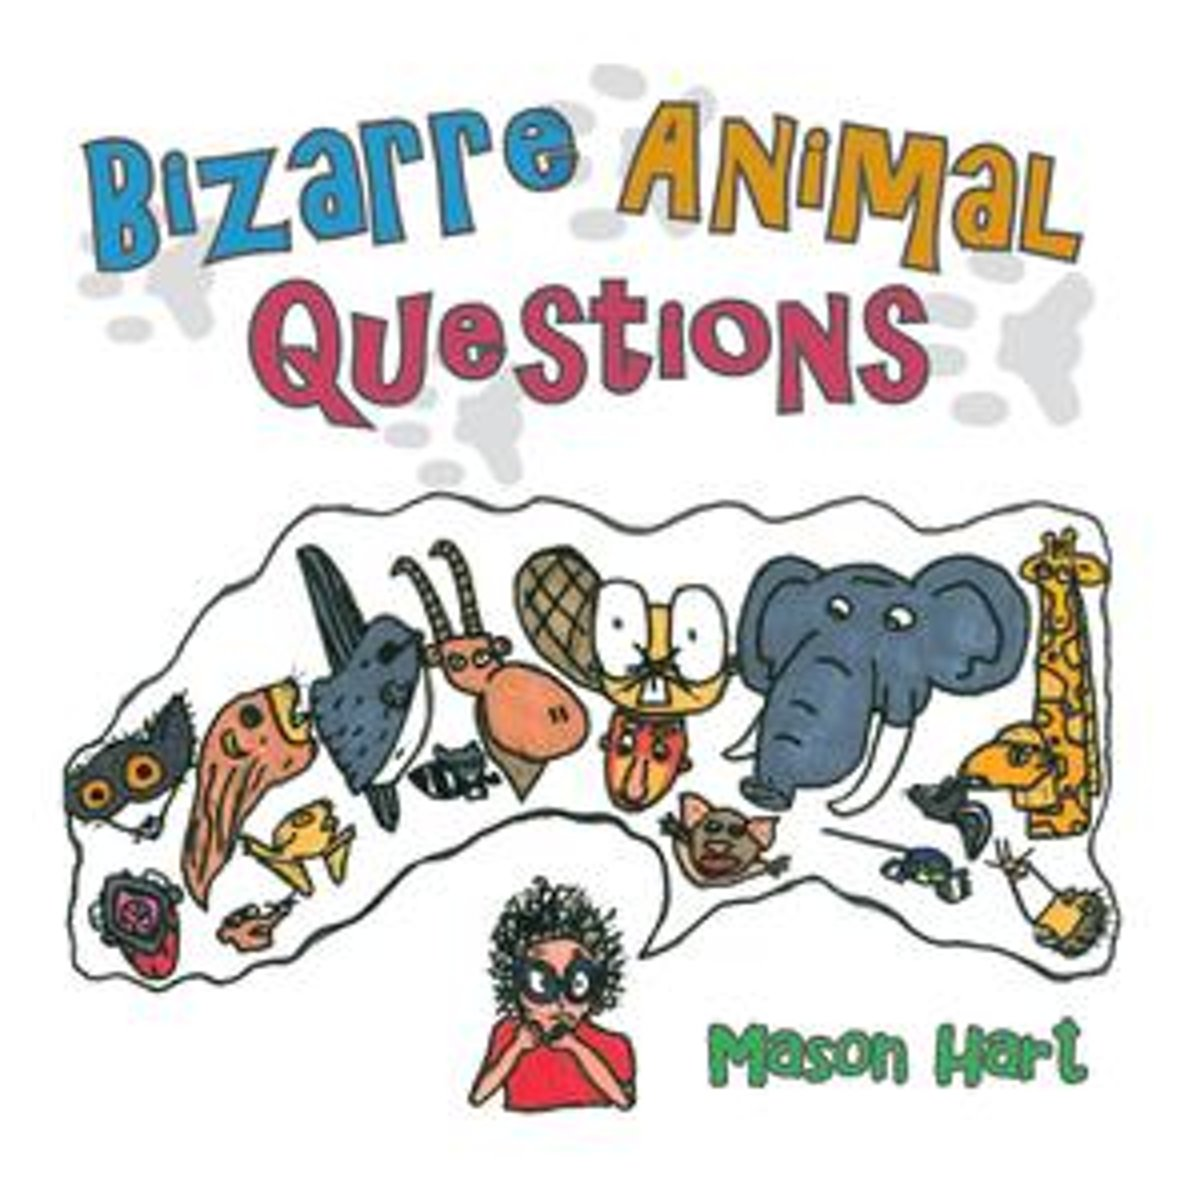 Bizarre Animal Questions